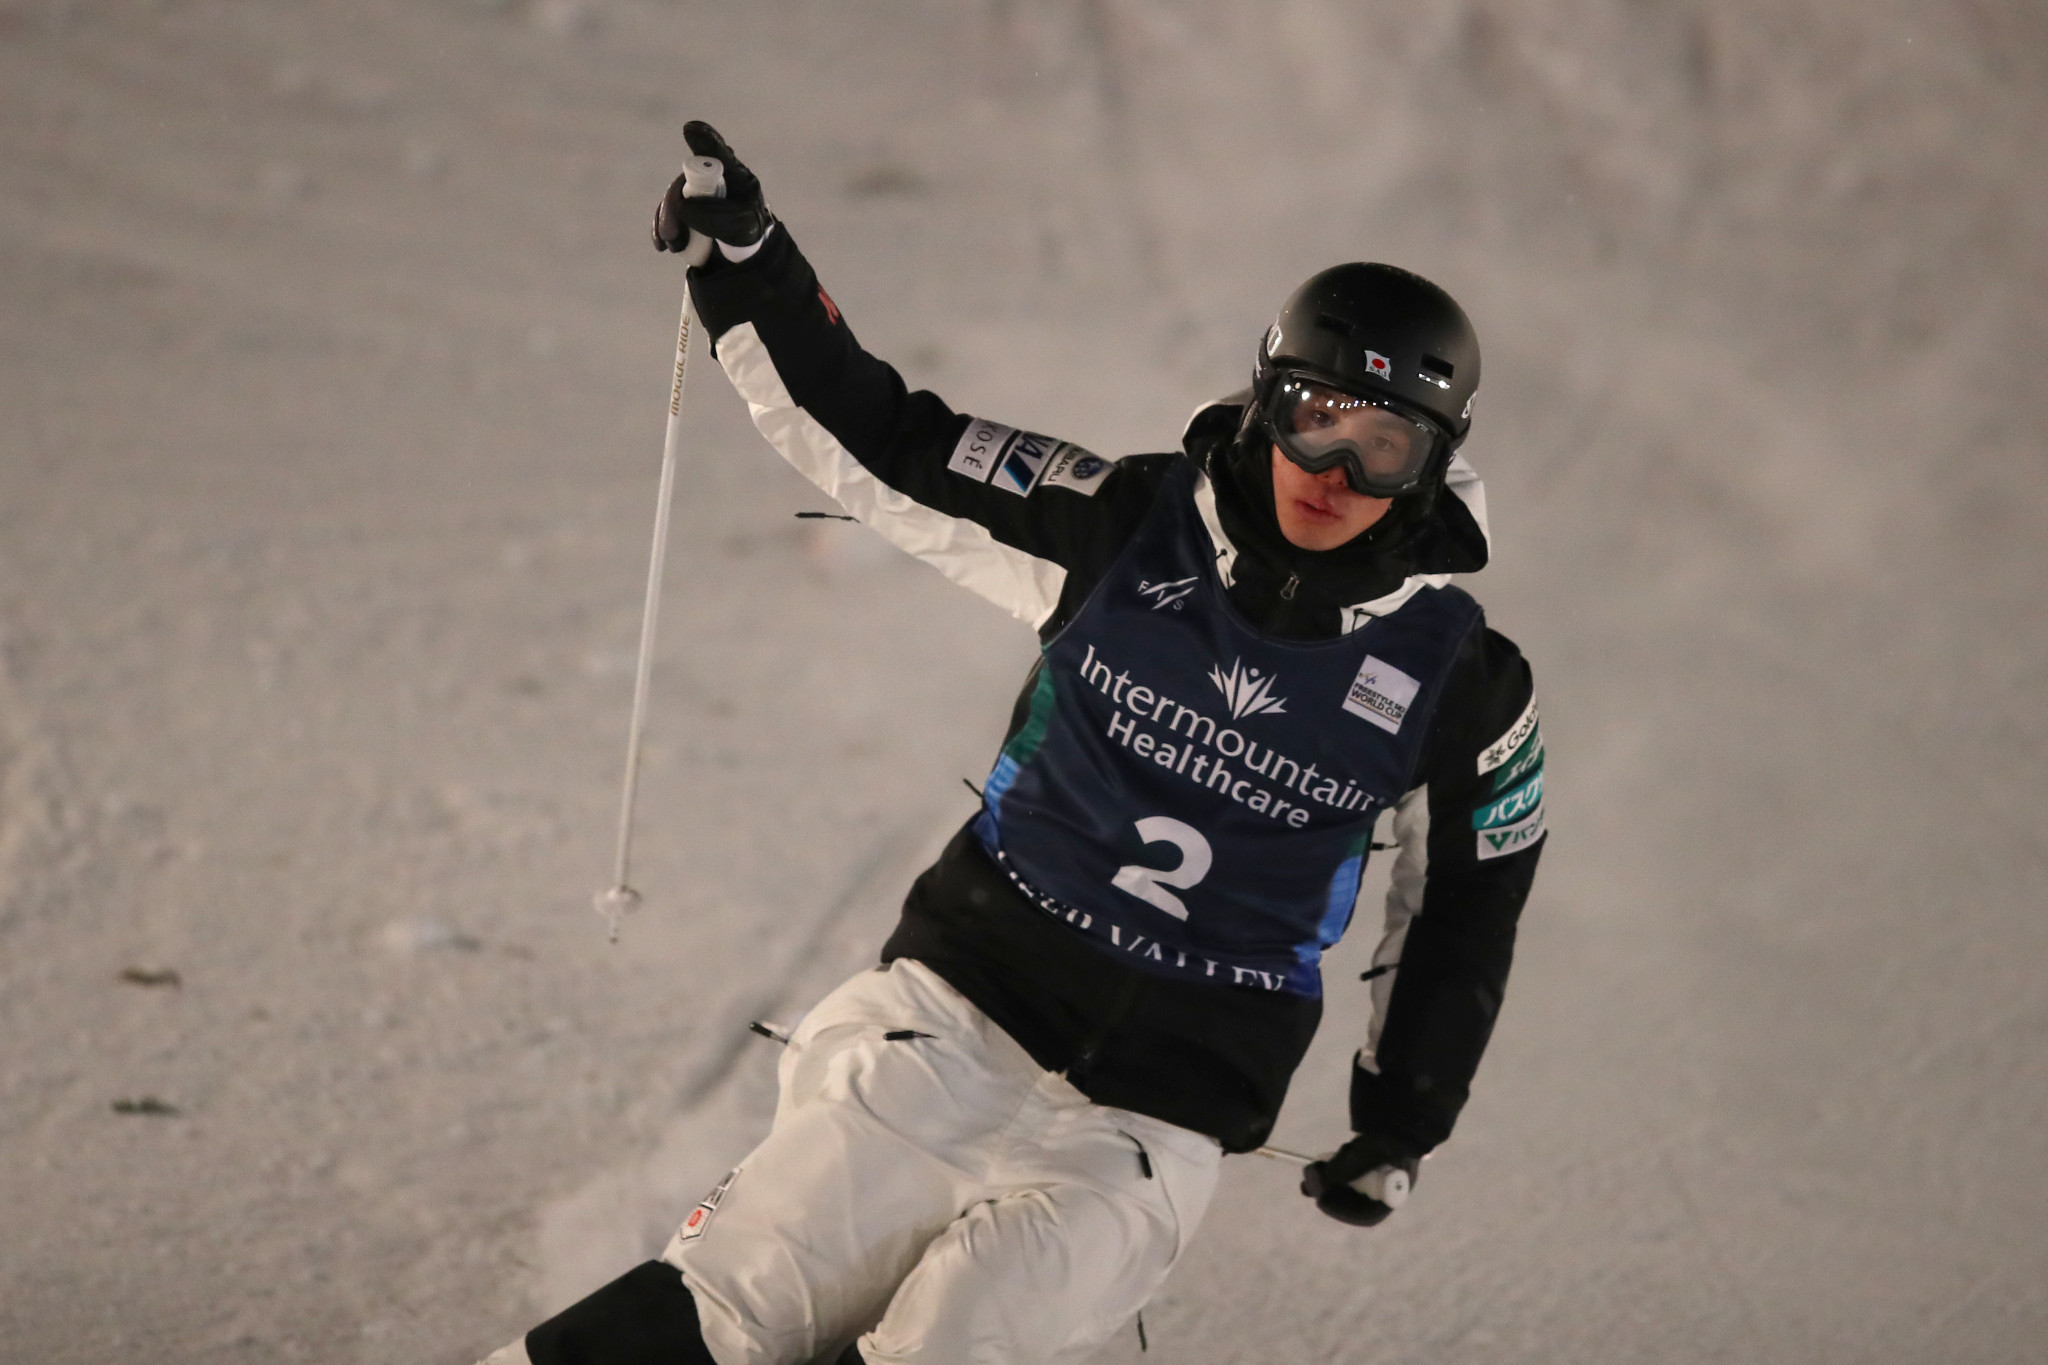 Horishima bests Kingsbury in dual moguls at FIS Freestyle Ski World Cup in Almaty